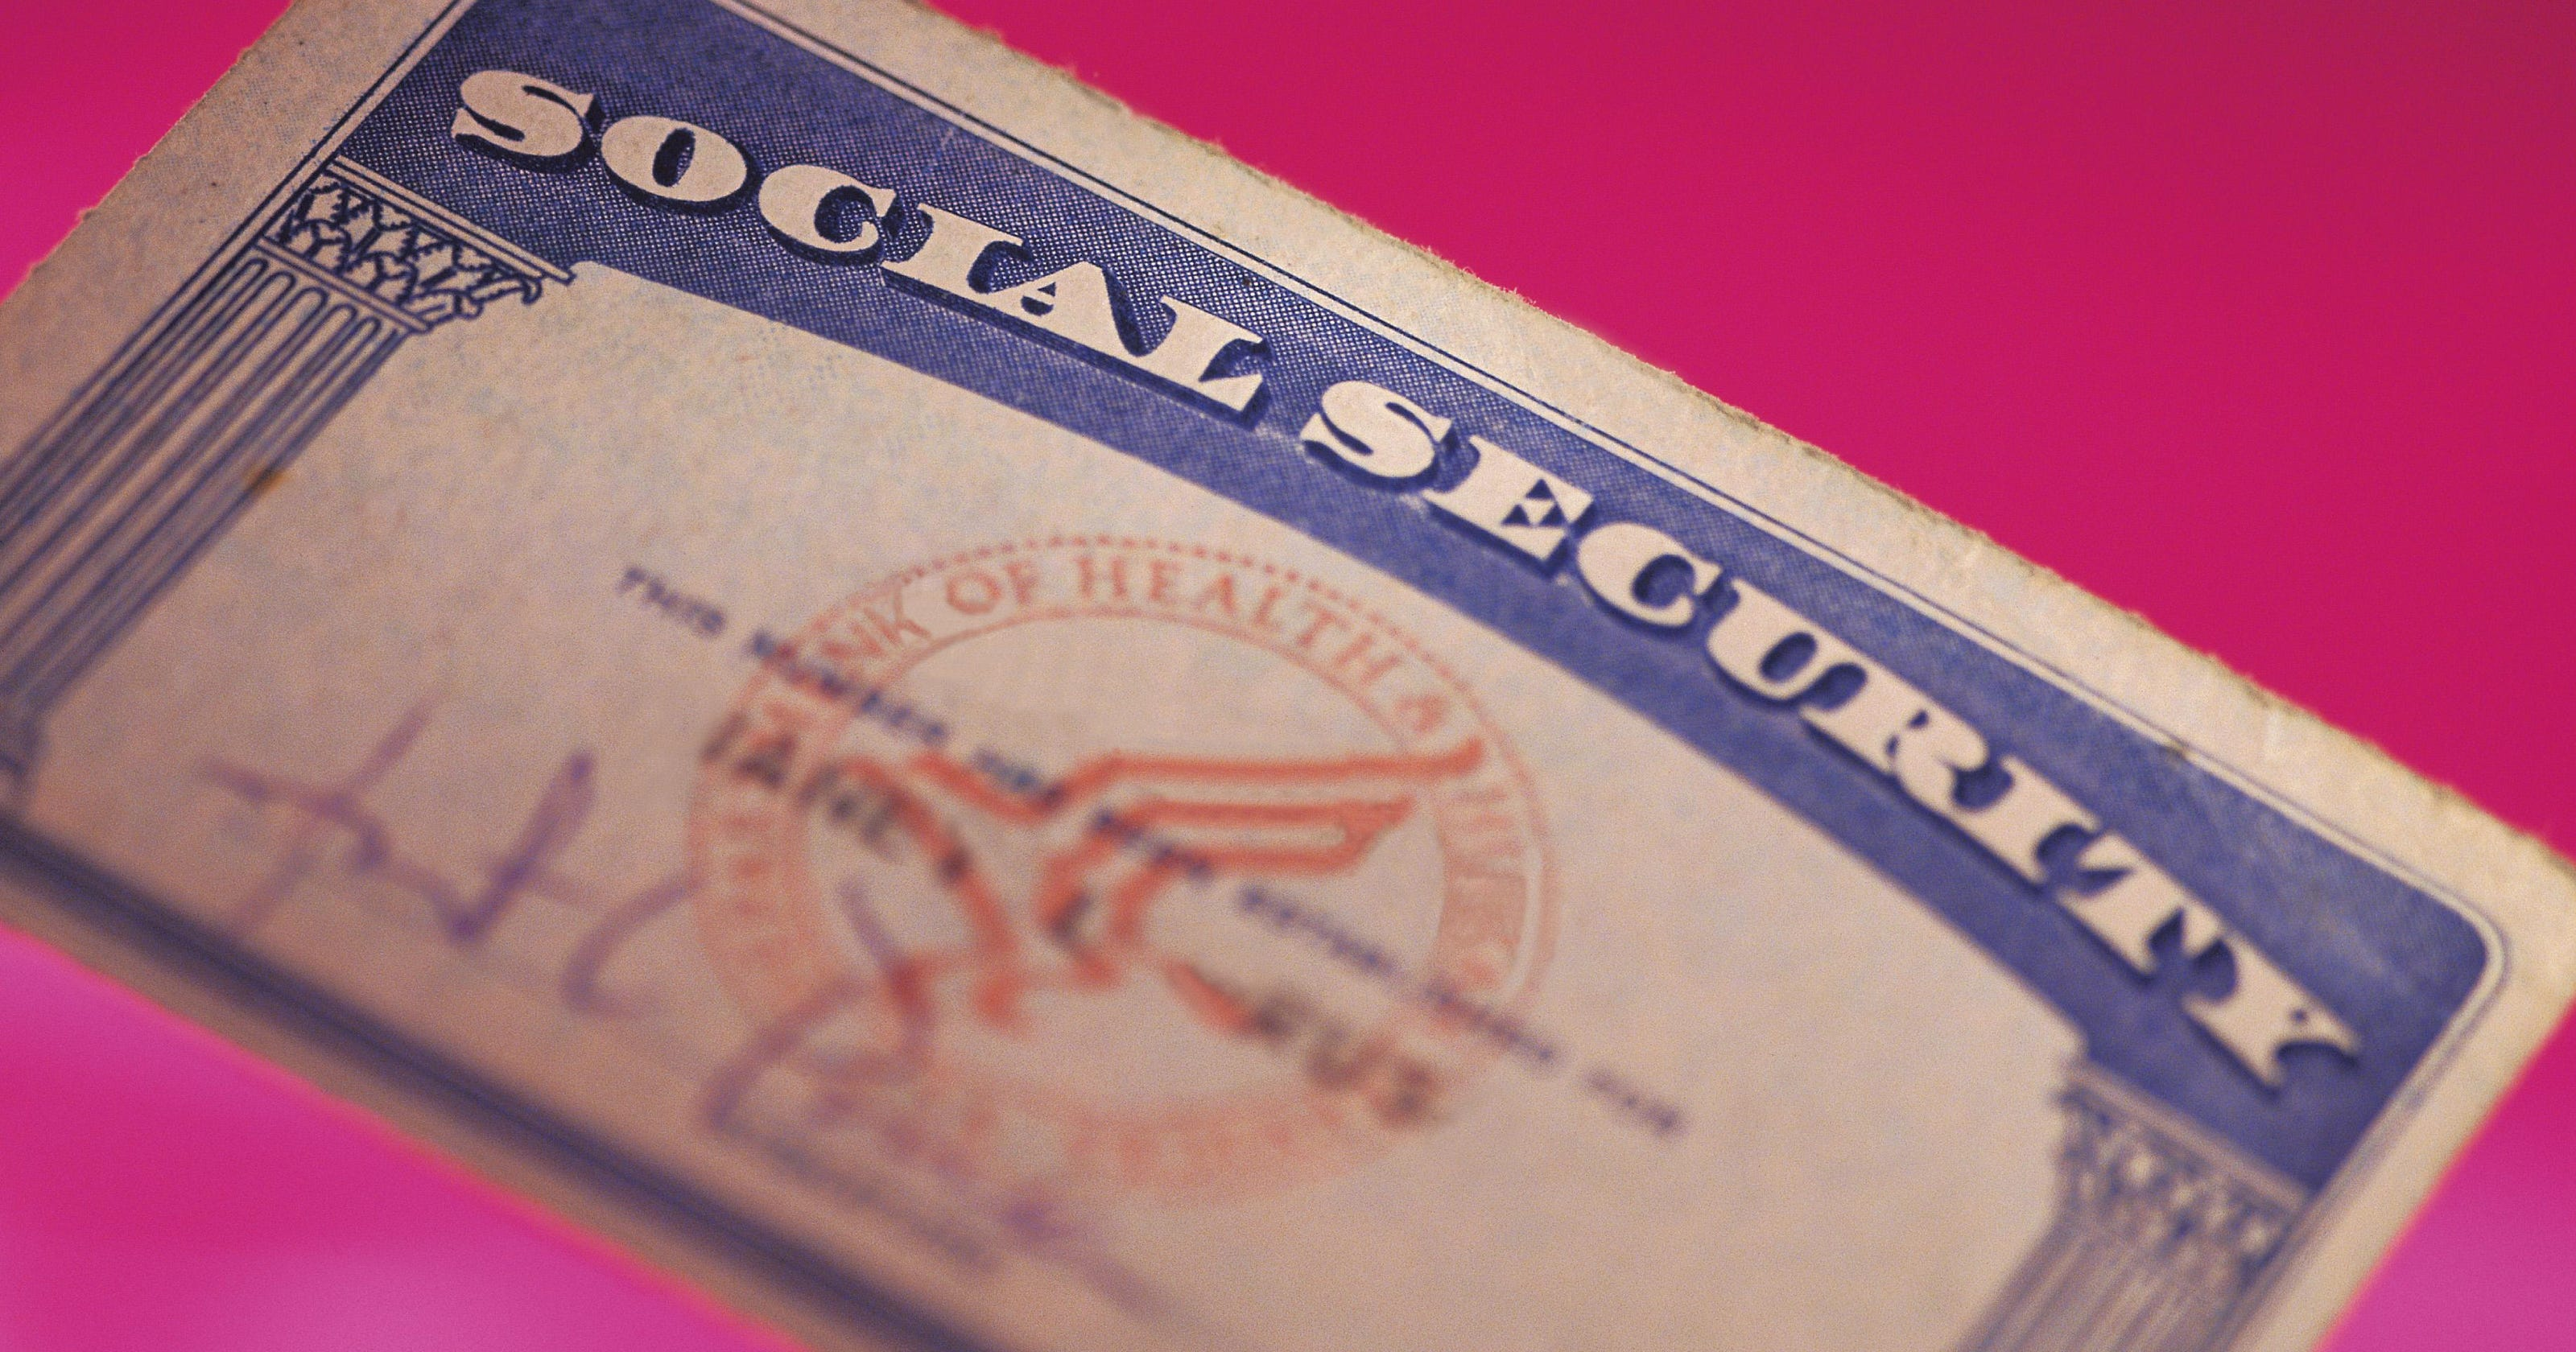 What if Social Security has your birthday wrong?